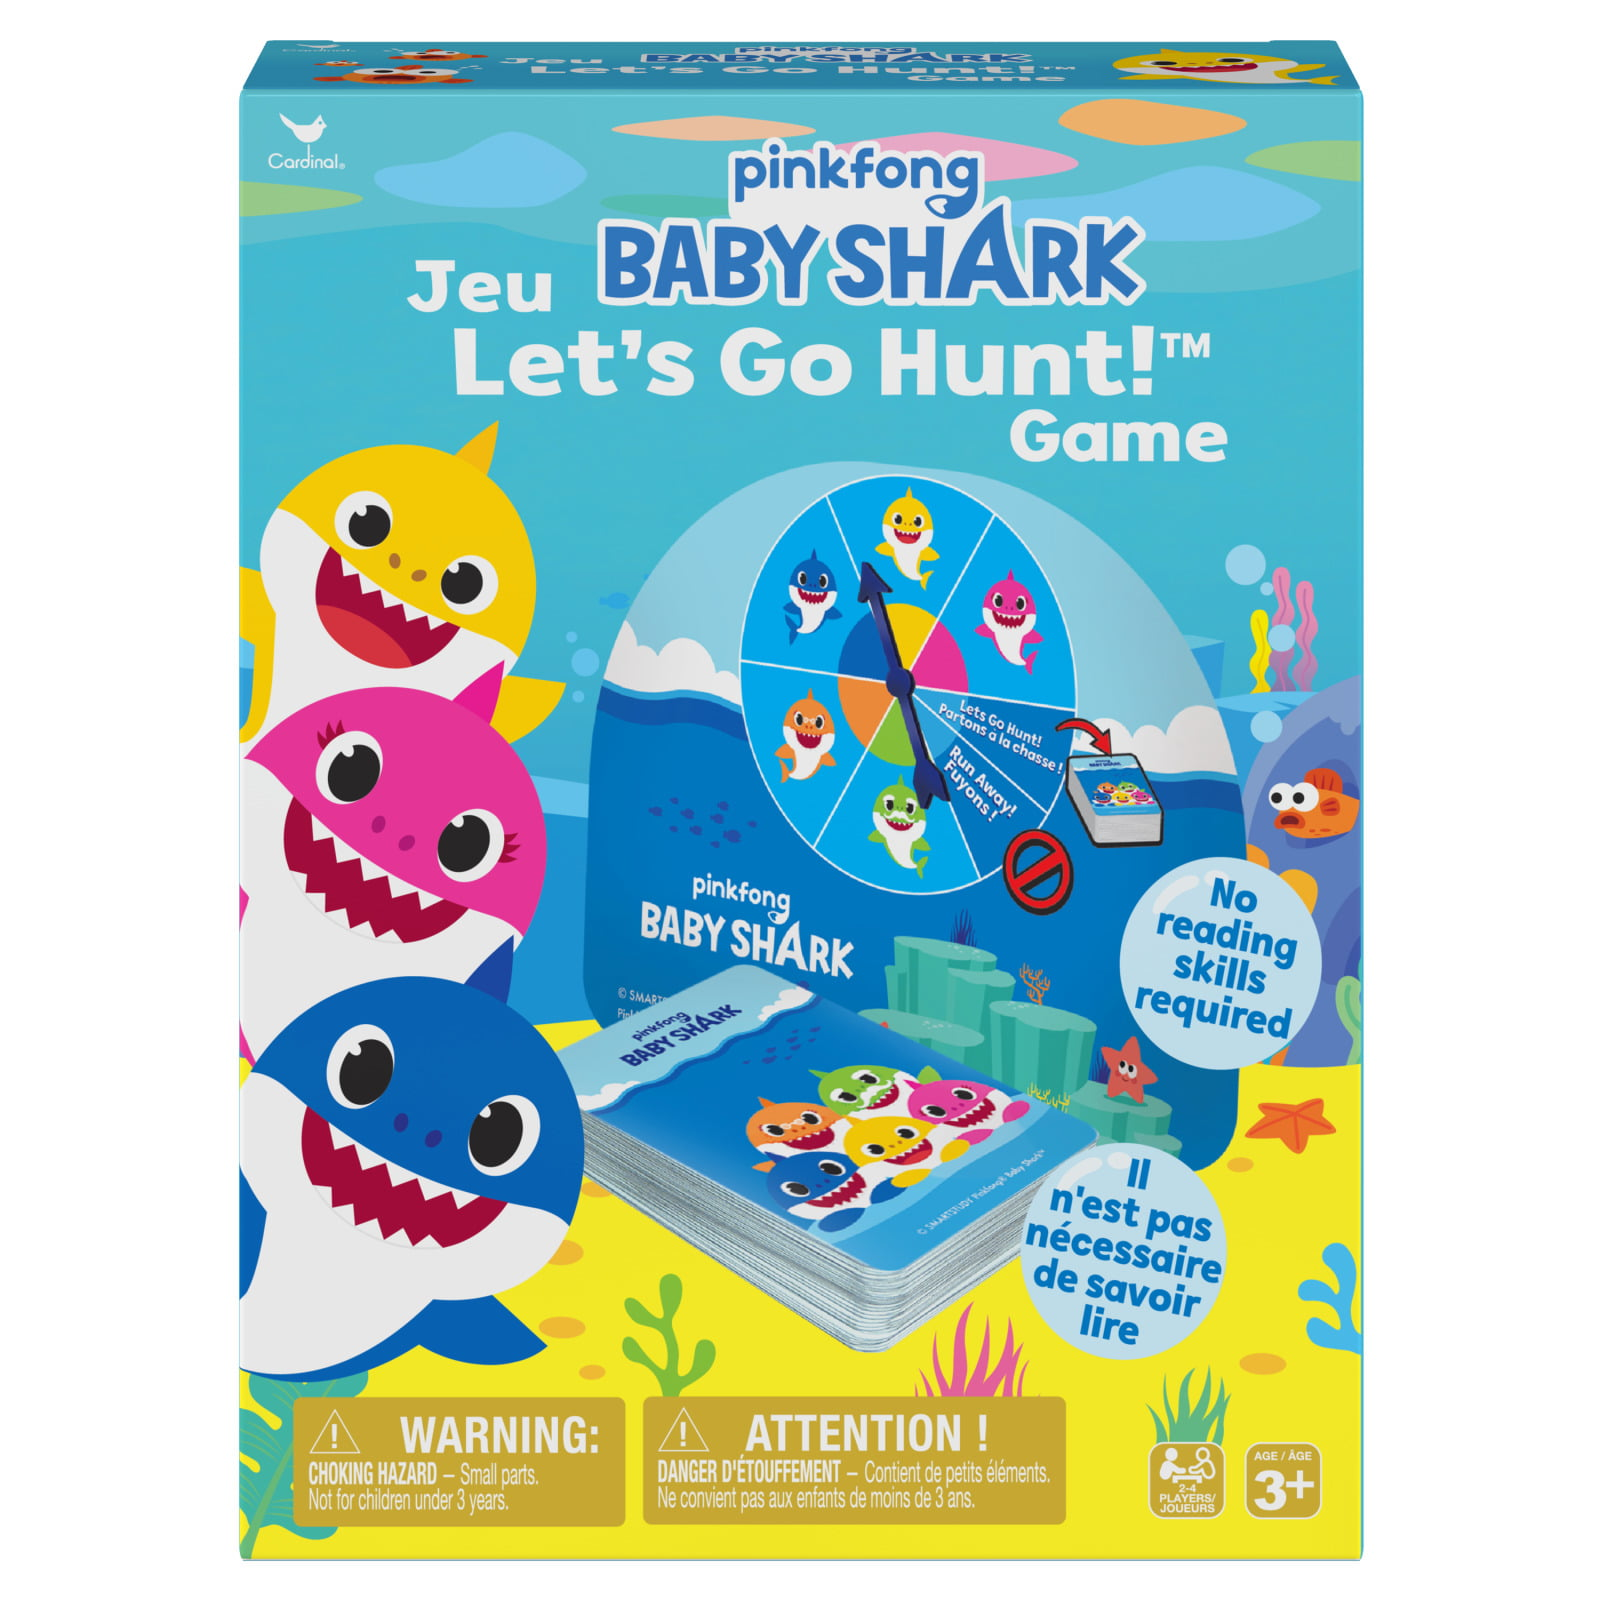 Pinkfong Baby Shark Let's Go Hunt Game